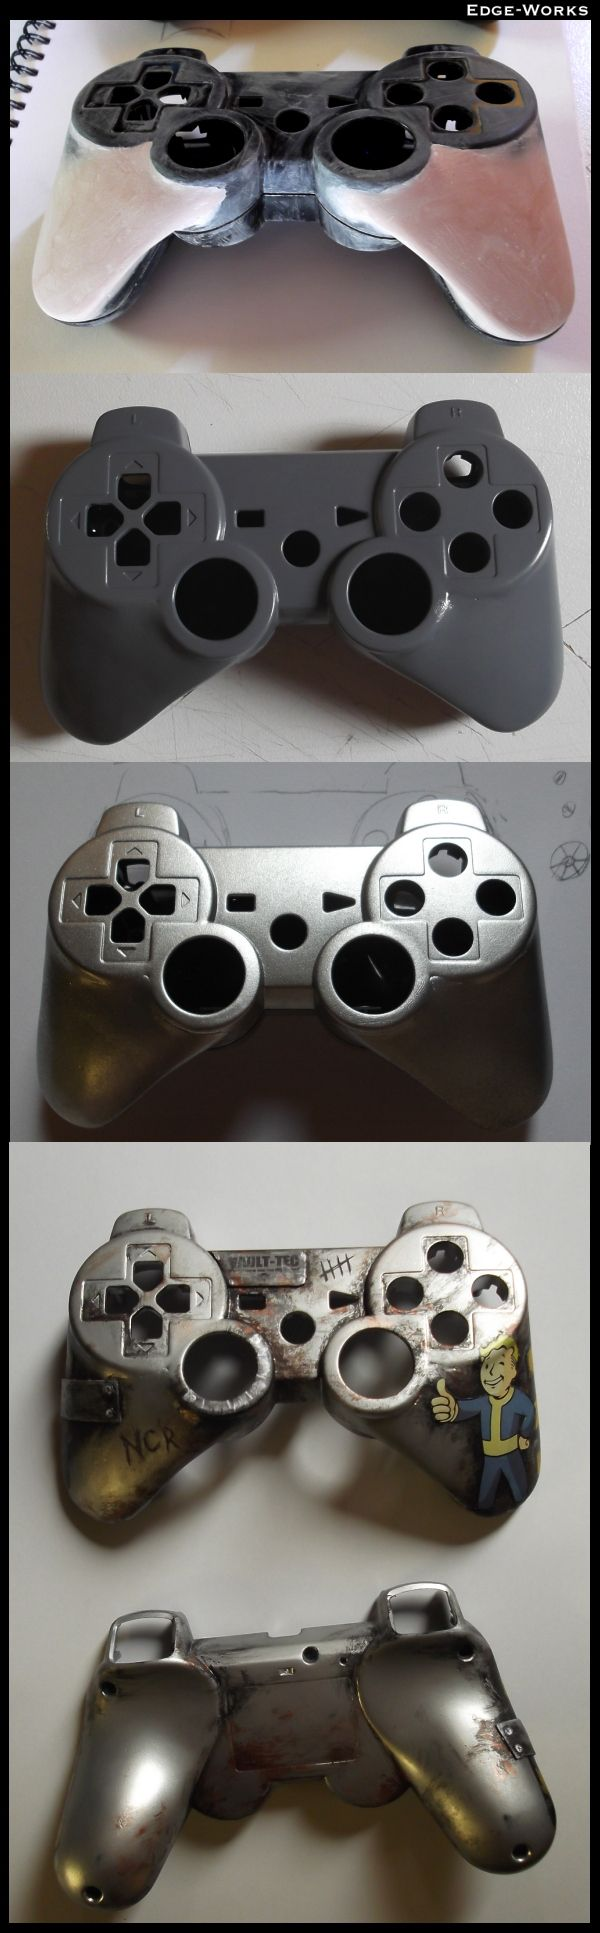 Fallout PS3 Control WIP by Edge-Works on DeviantArt